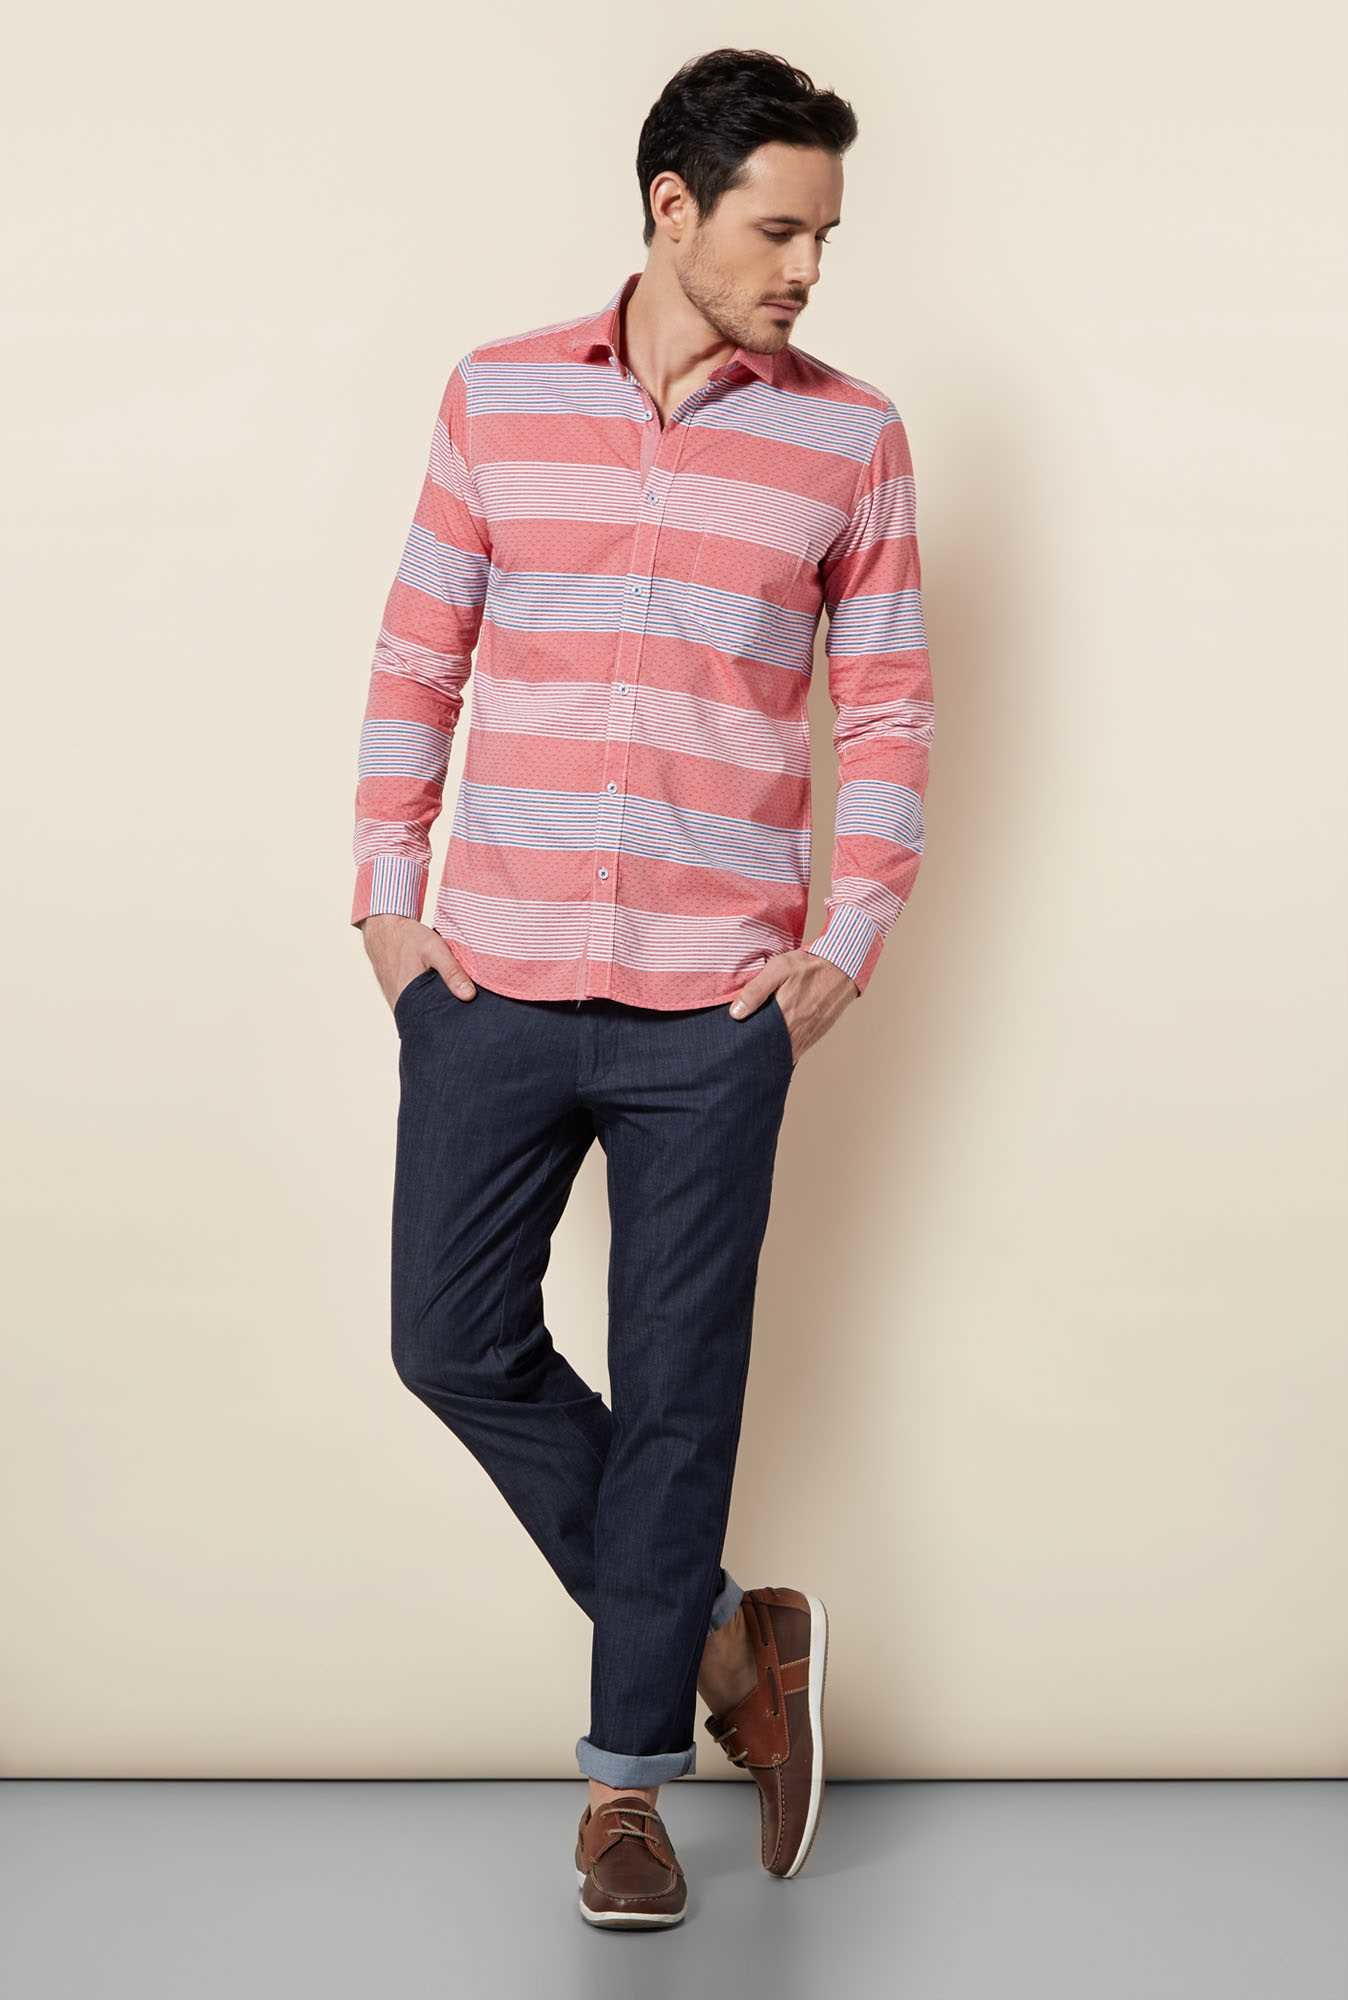 Easies Red Motif Stripe Shirt